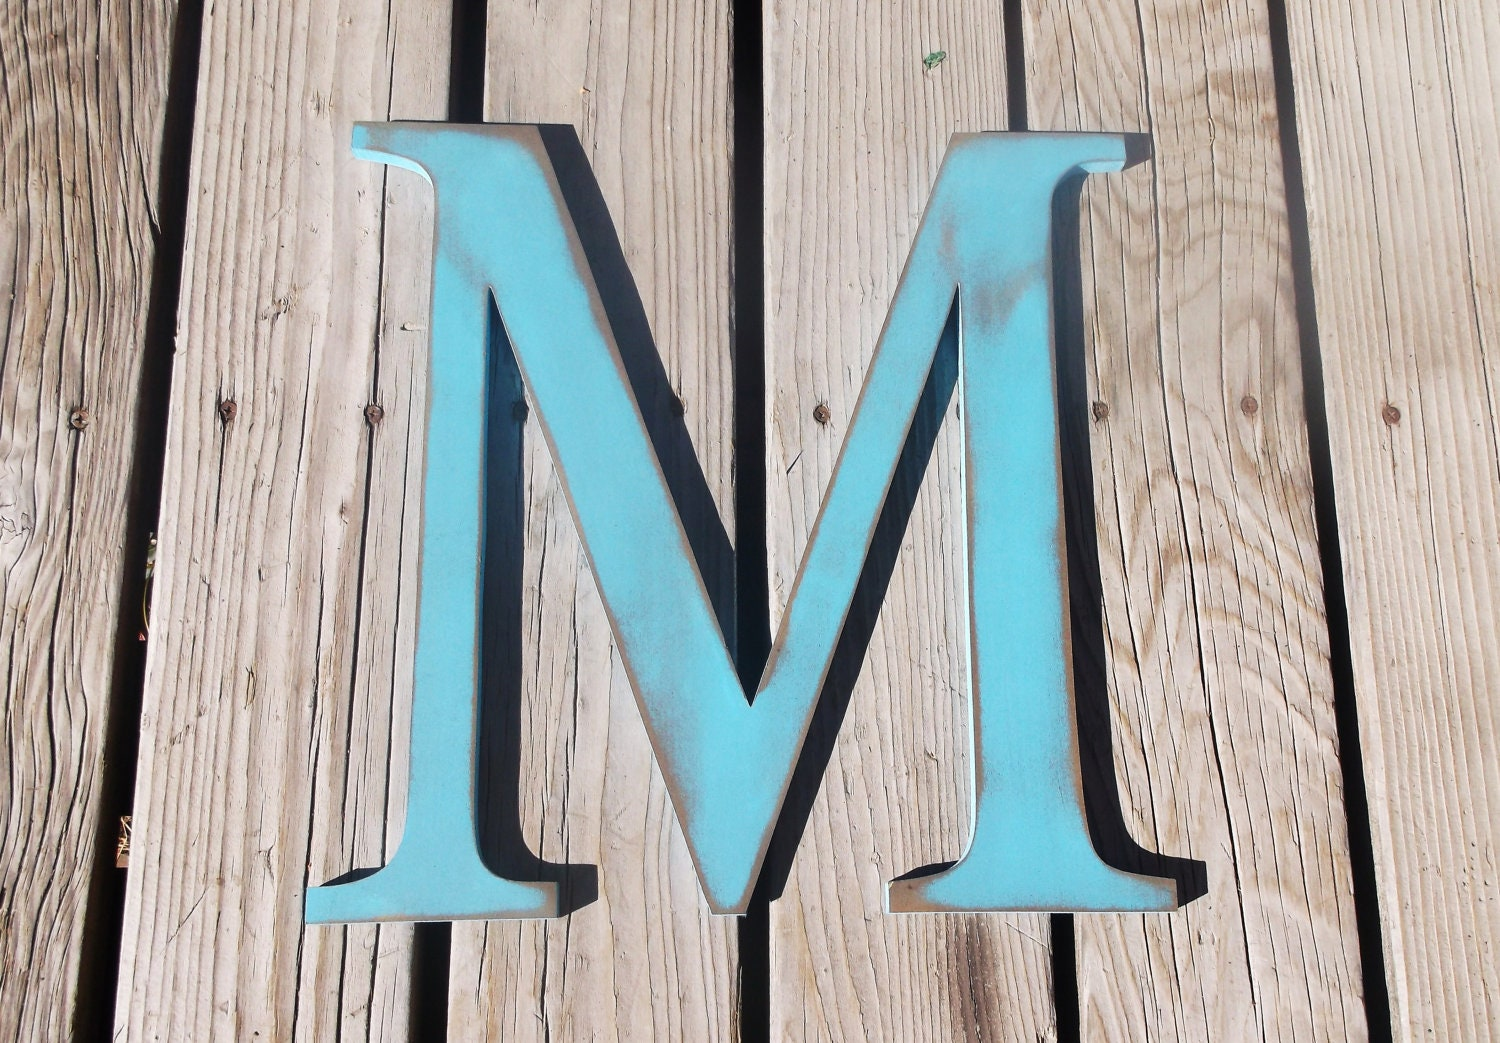 Extra large 16 rustic wooden letters by busybeevinyl on etsy for 16 wooden letters